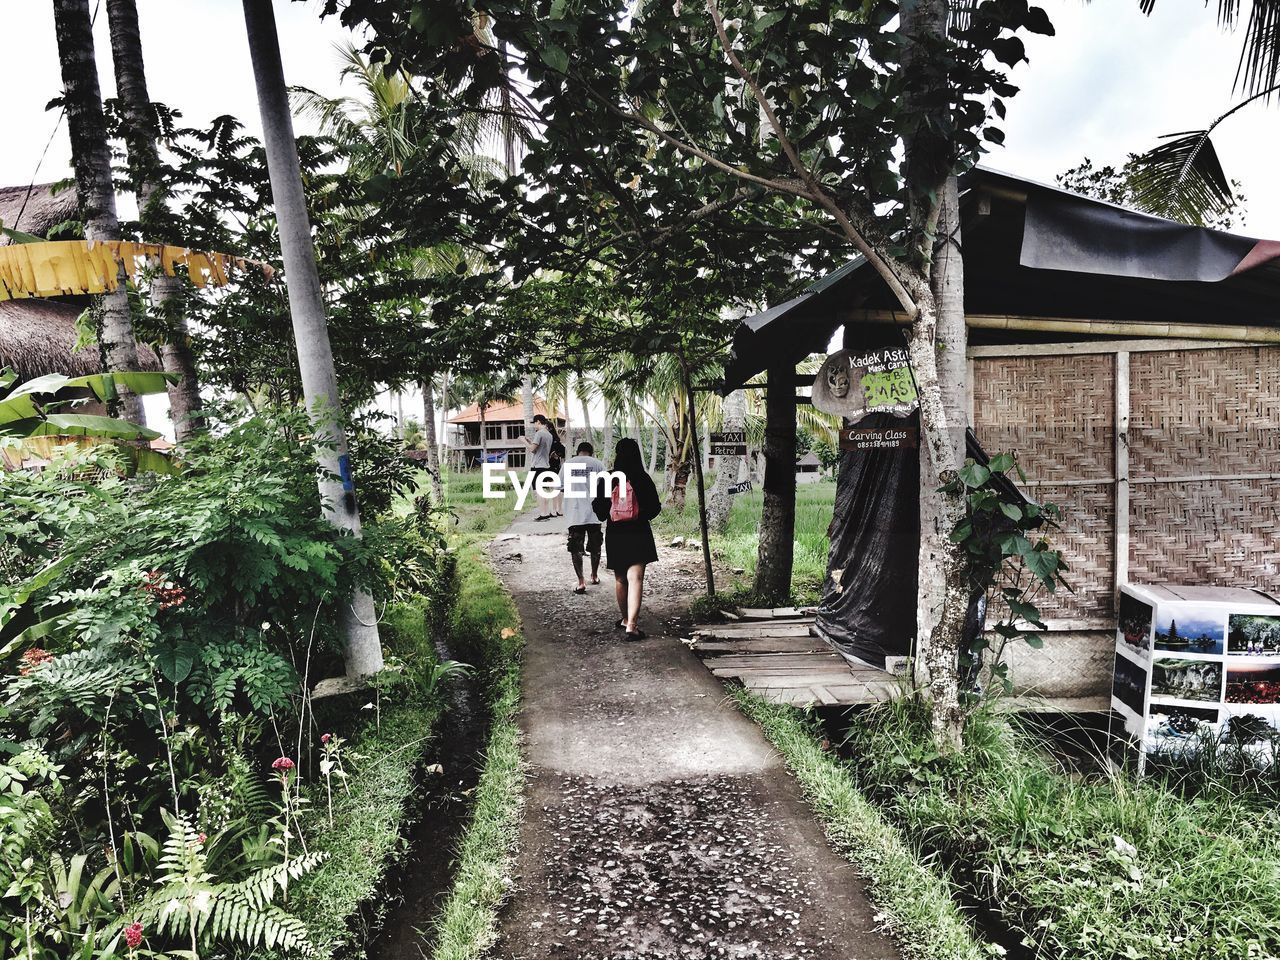 walking, architecture, tree, real people, built structure, full length, building exterior, one person, day, outdoors, lifestyles, men, nature, grass, people, adult